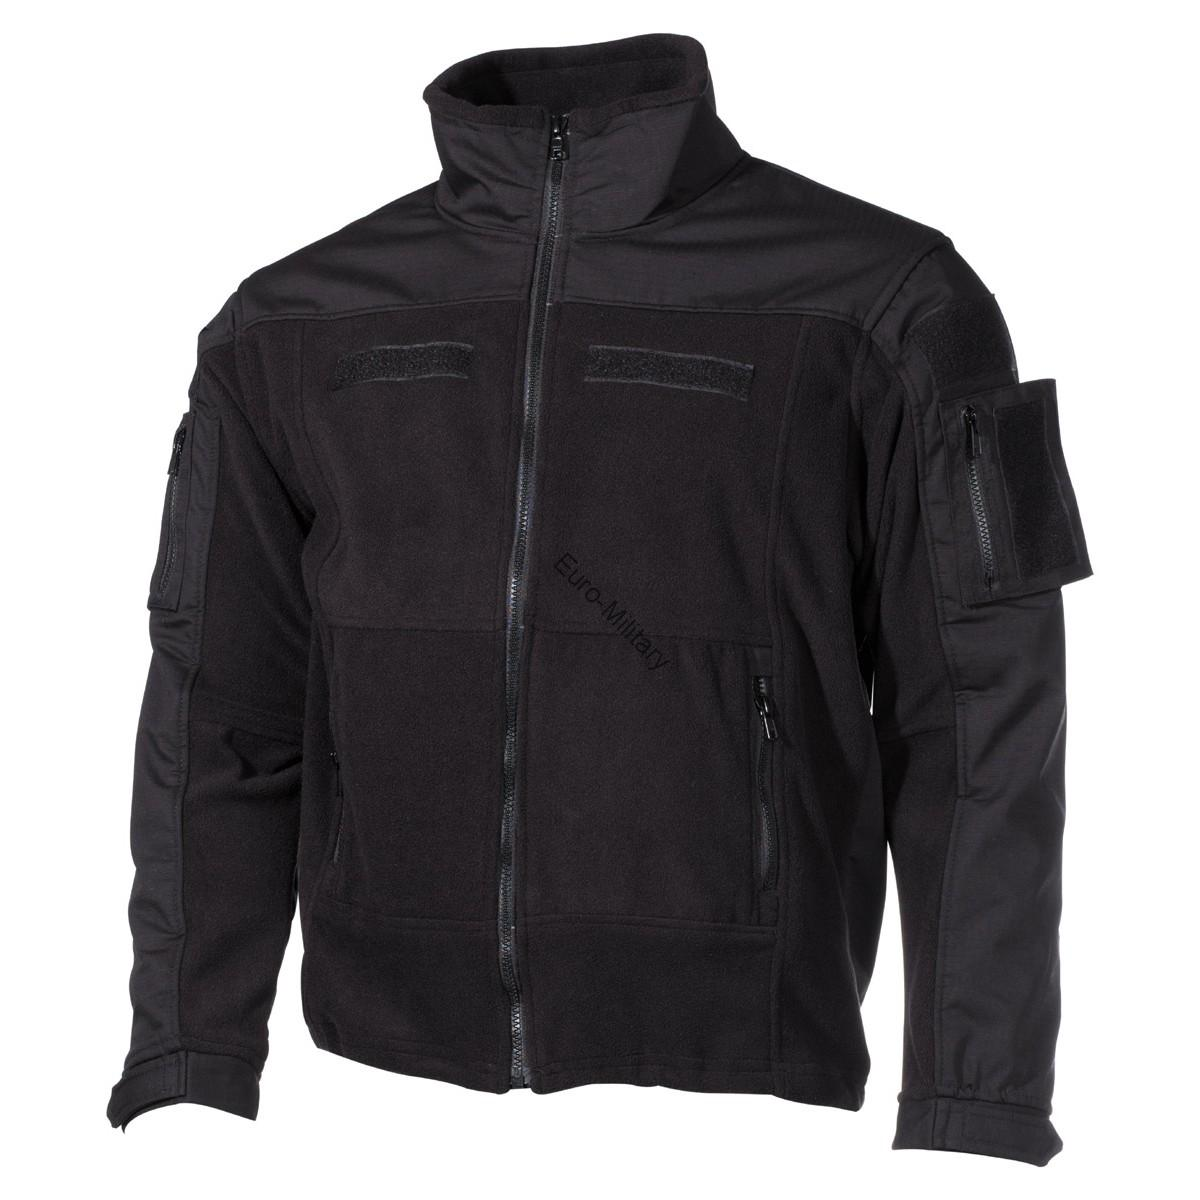 Professional Tactical Military Fleece Jacket COMBAT High Defense - Black